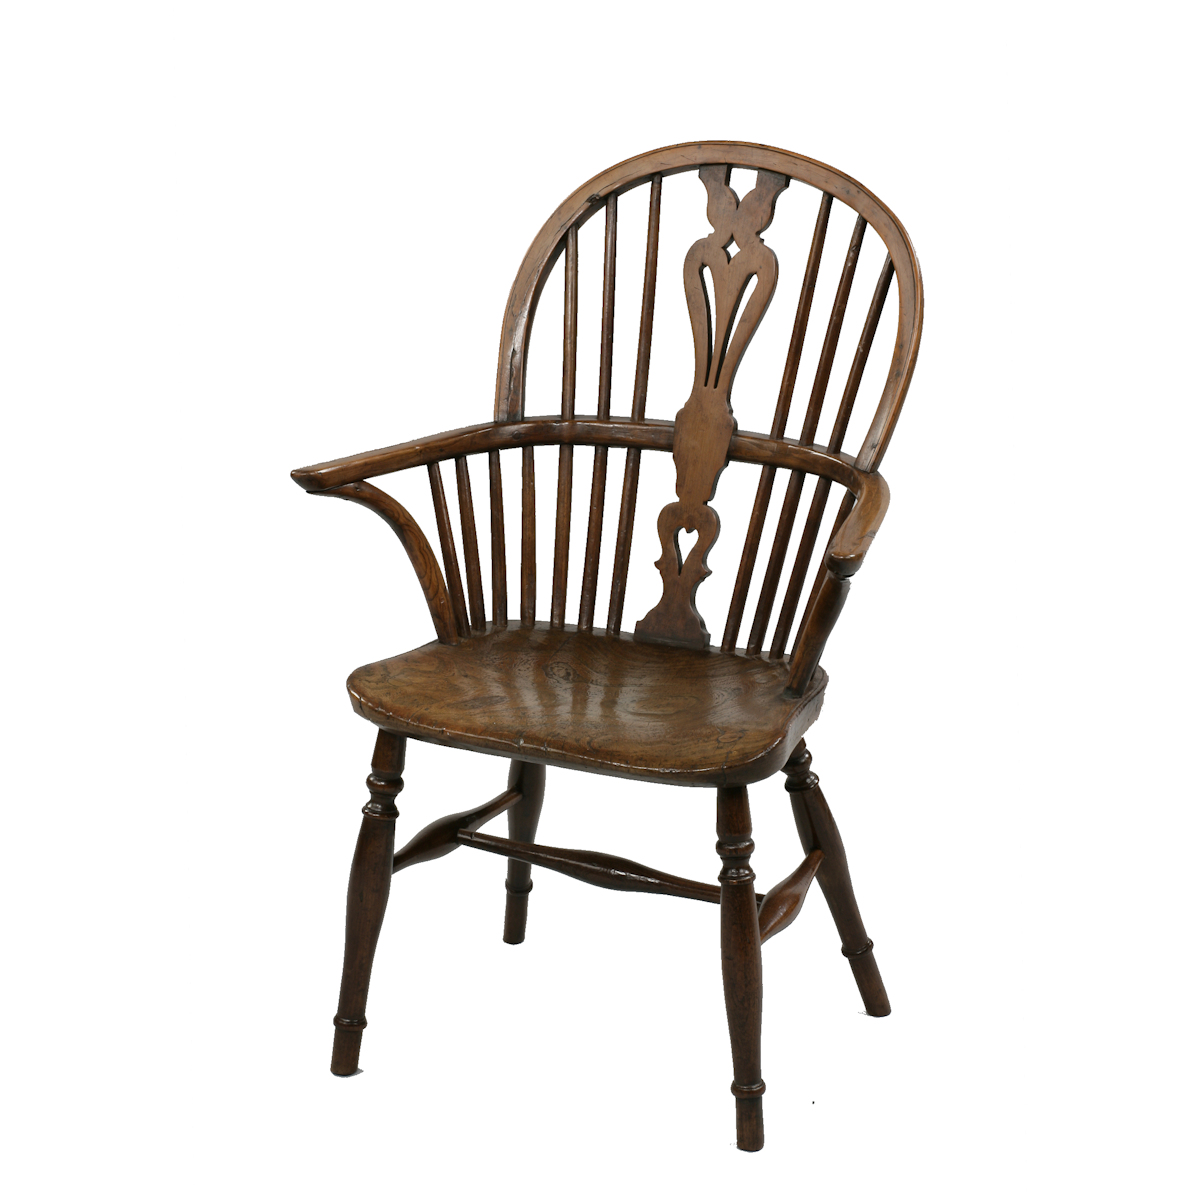 chairs styles chair antique side armed chinese up of close traditional